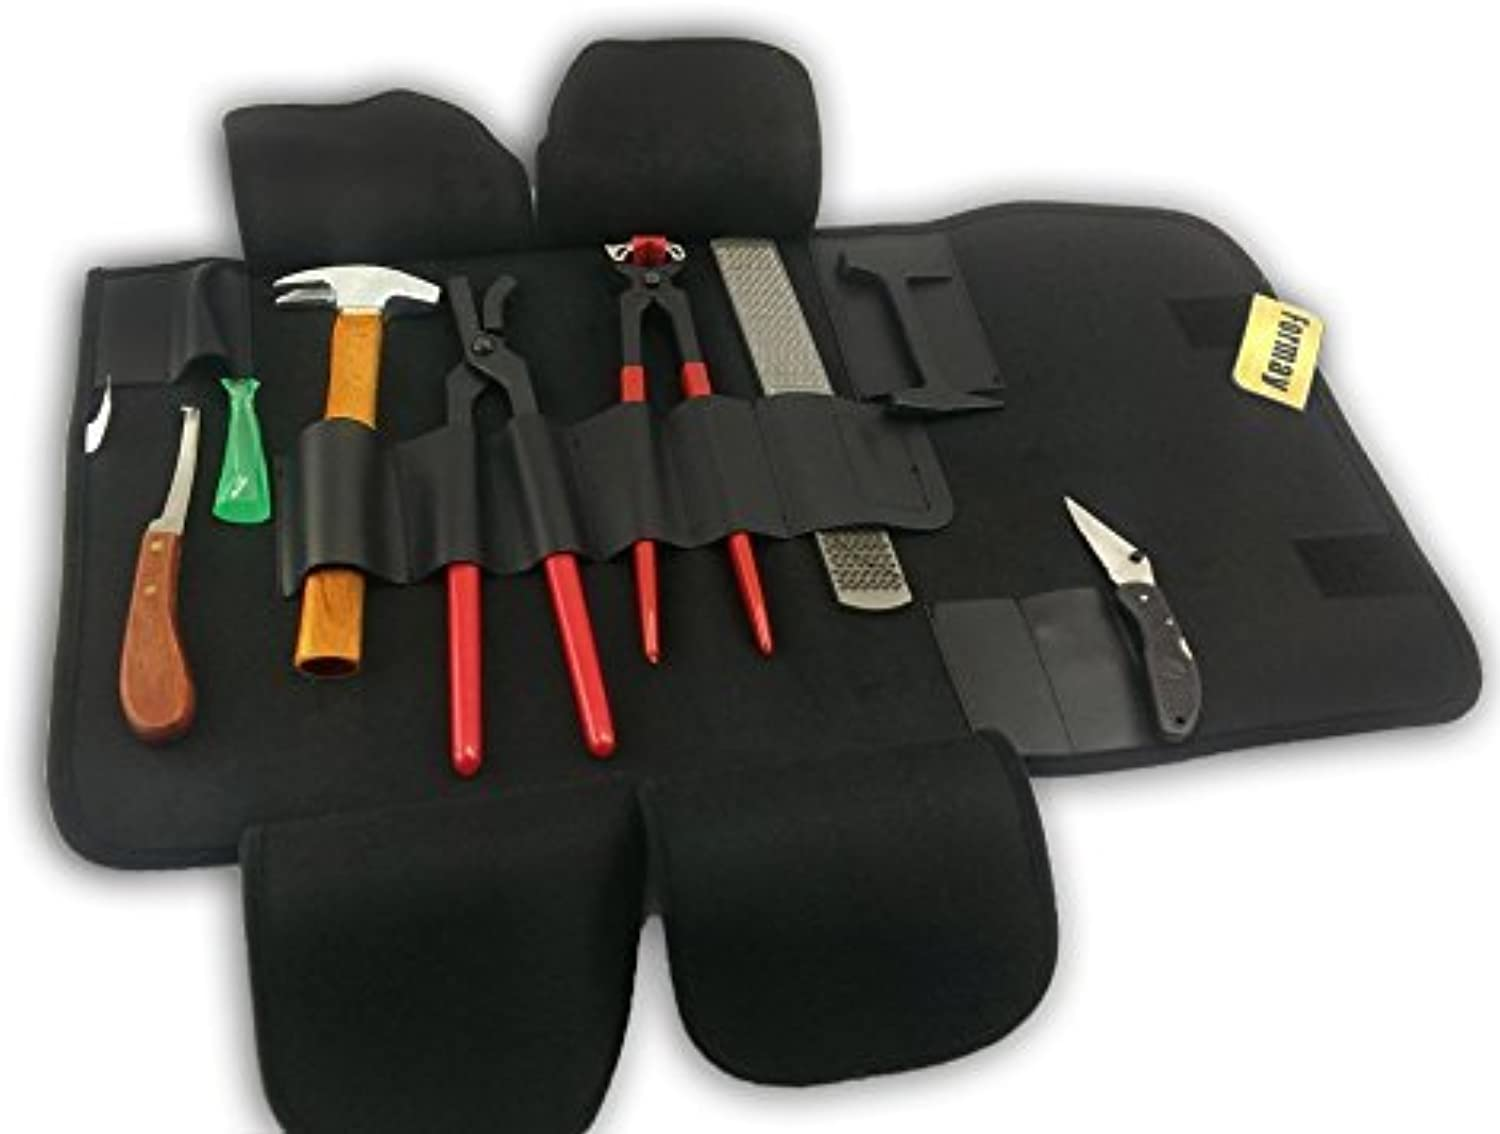 8Piece Complete Farrier Kit by Aime Imports